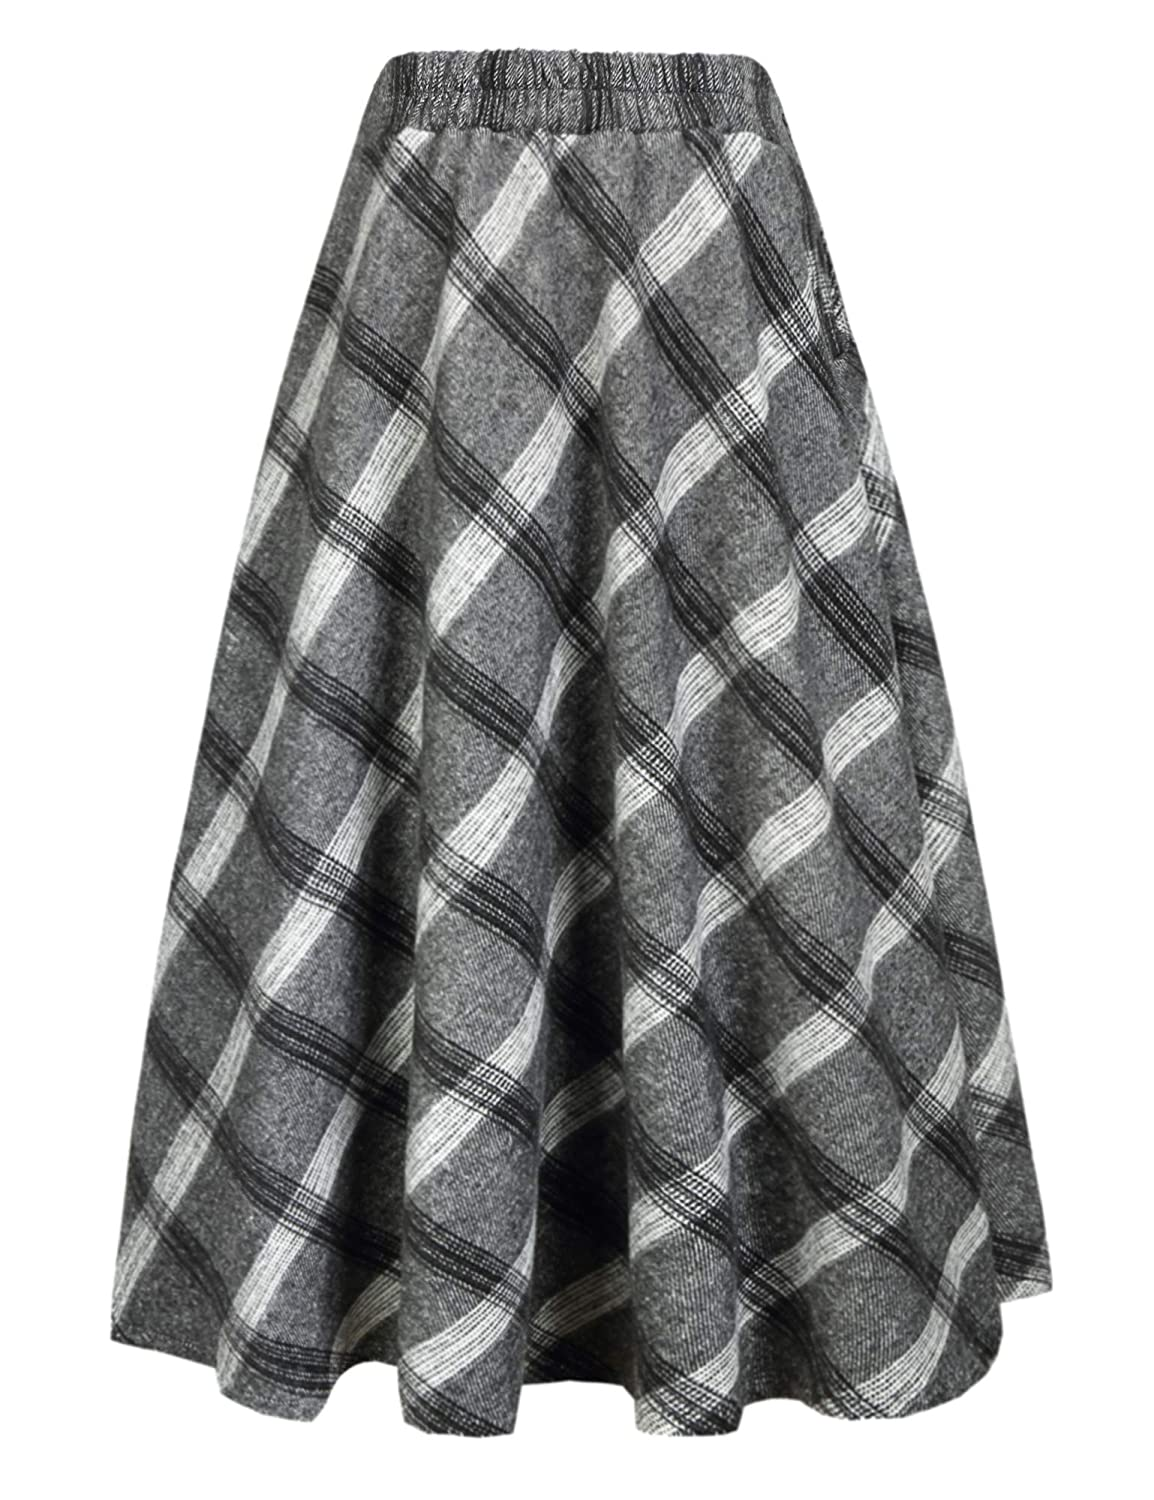 3eb32673ed9 IDEALSANXUN Womens High Elastic Waist Maxi Skirt A-line Plaid Winter Warm  Flare Long Skirt at Amazon Women s Clothing store